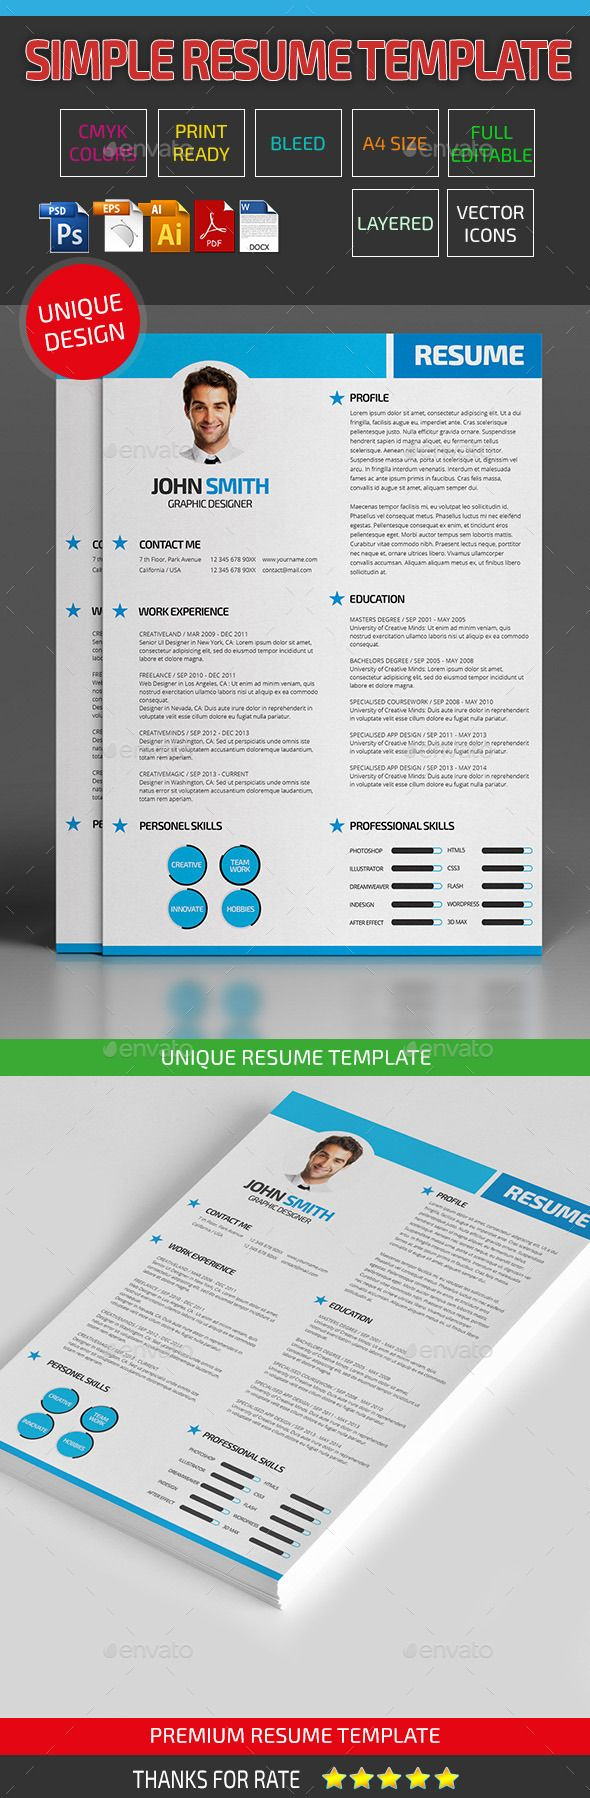 simple resume indesign template graphicriver 28 images